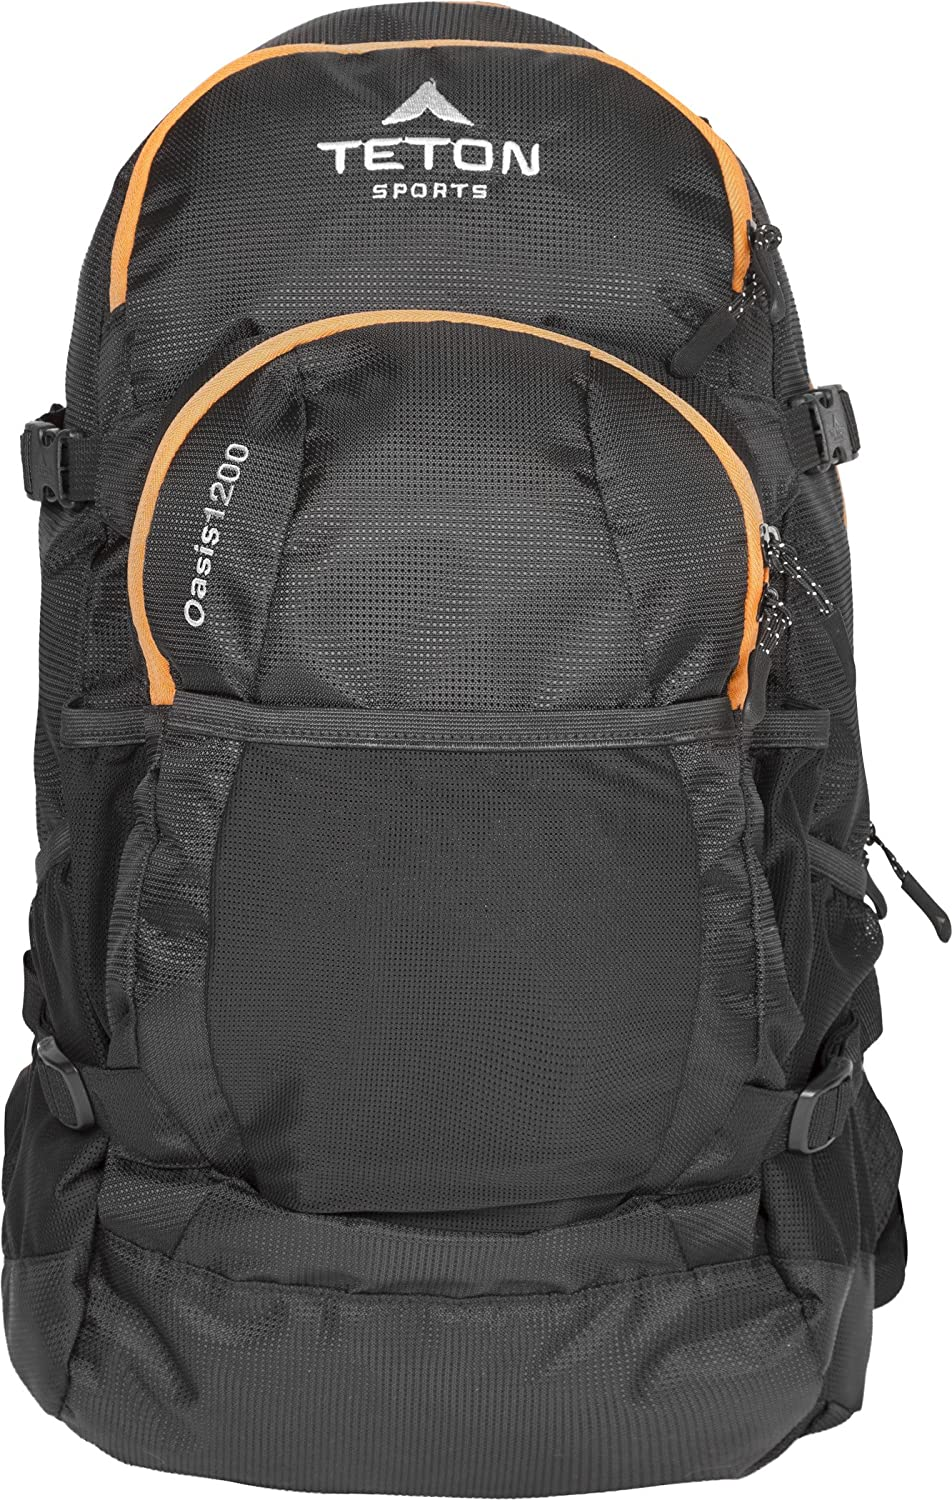 TETON Sports Oasis 1200 Hydration Pack Free 3-Liter Hydration Bladder Backpacking, Hiking, Running, Cycling, and Climbing